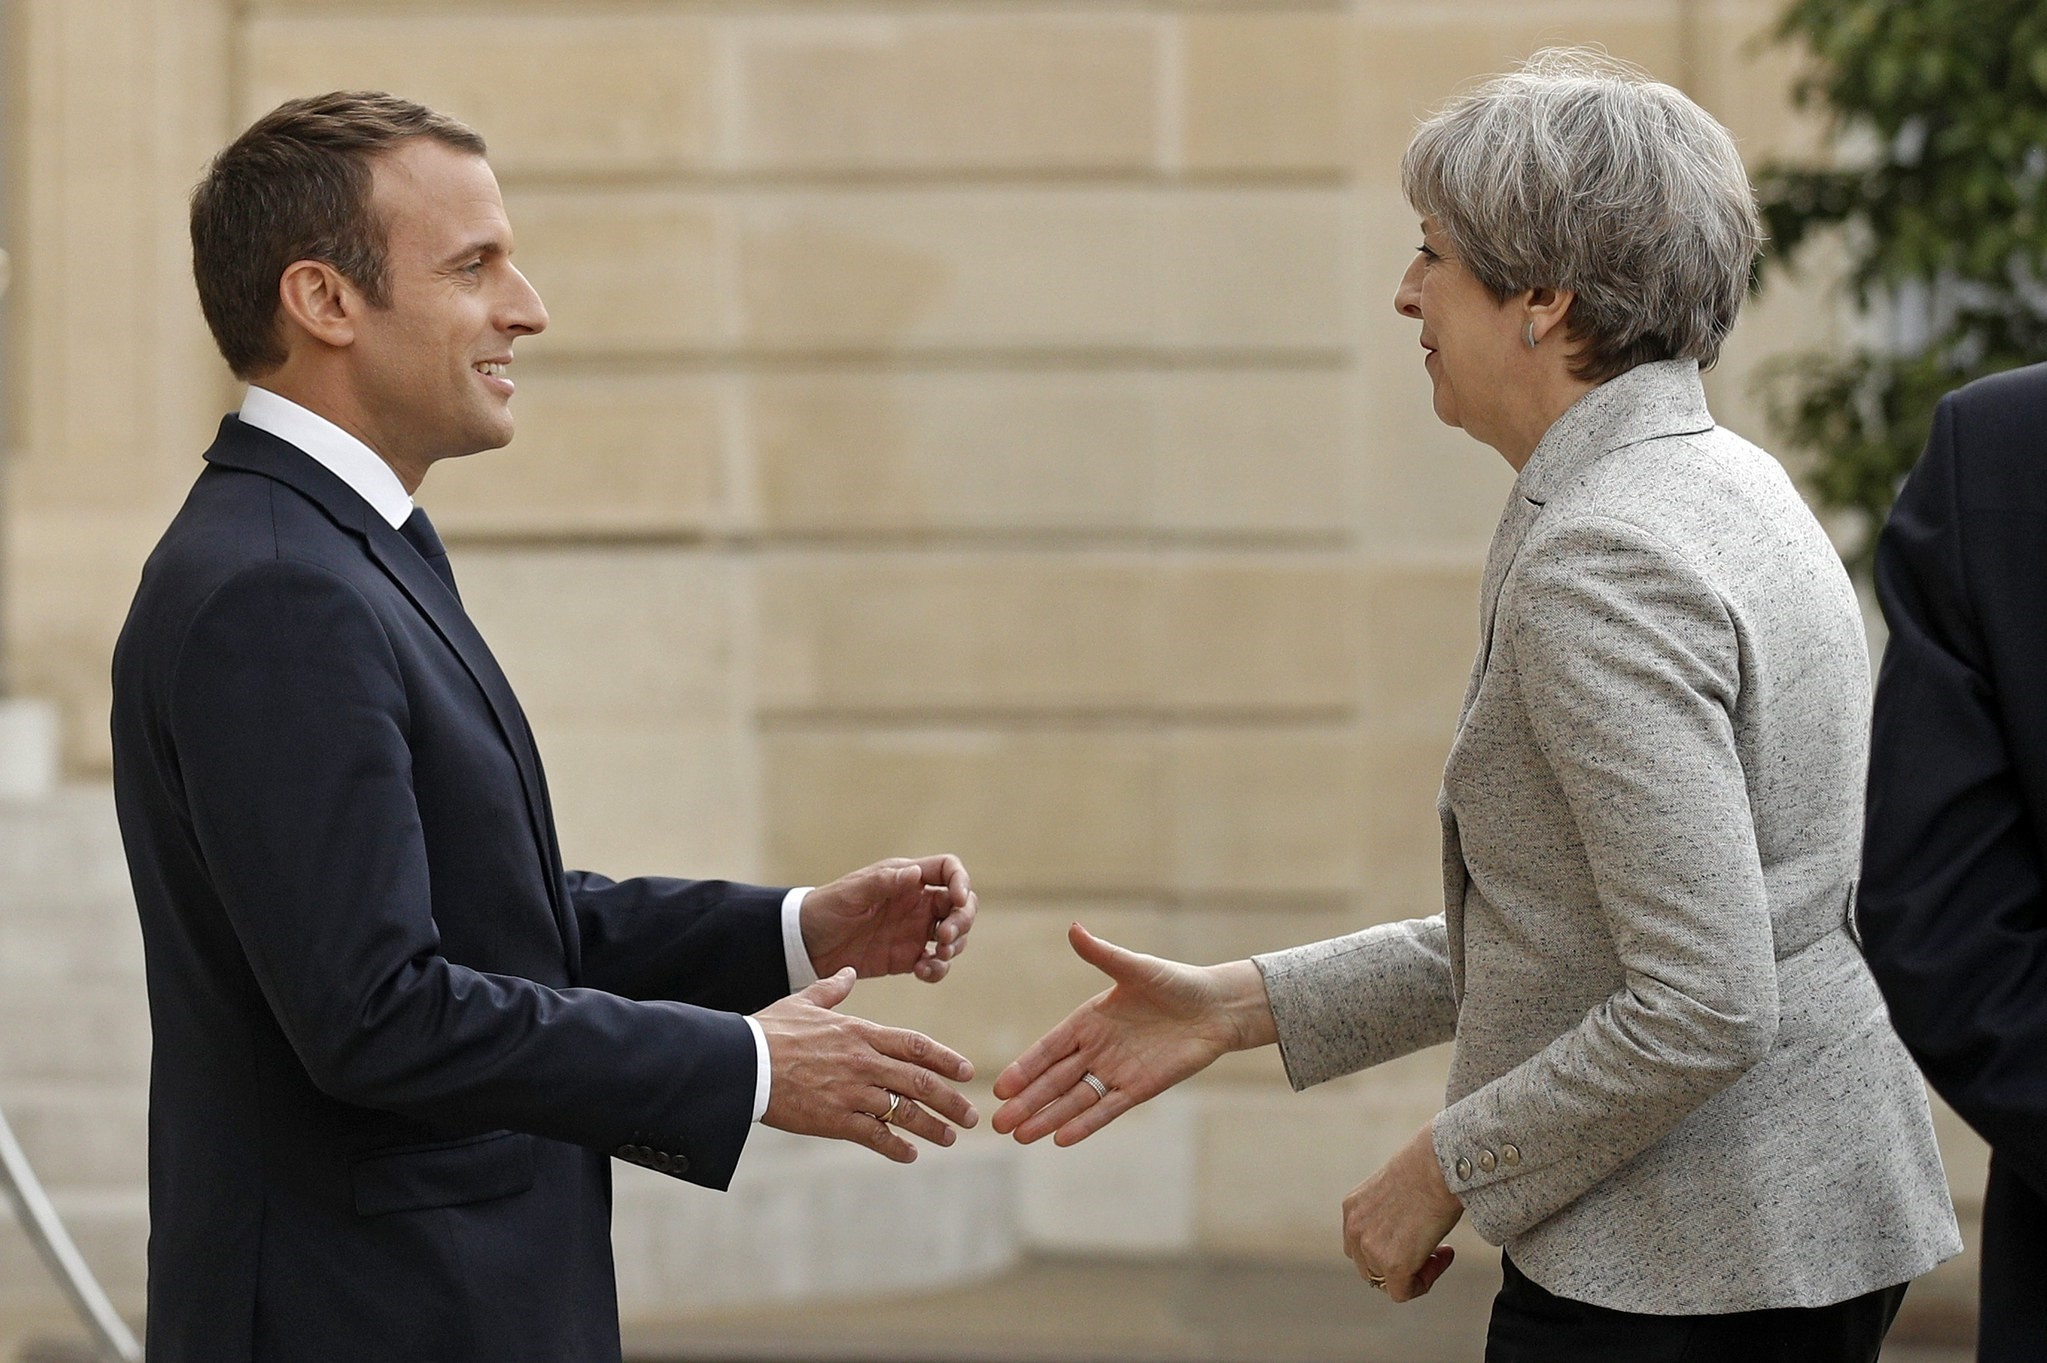 French President Emmanuel Macron (L) greets British Prime Minister Theresa May (R) upon her arrival at the Elysee Palace in Paris, France, 13 June 2017. (EPA Photo)